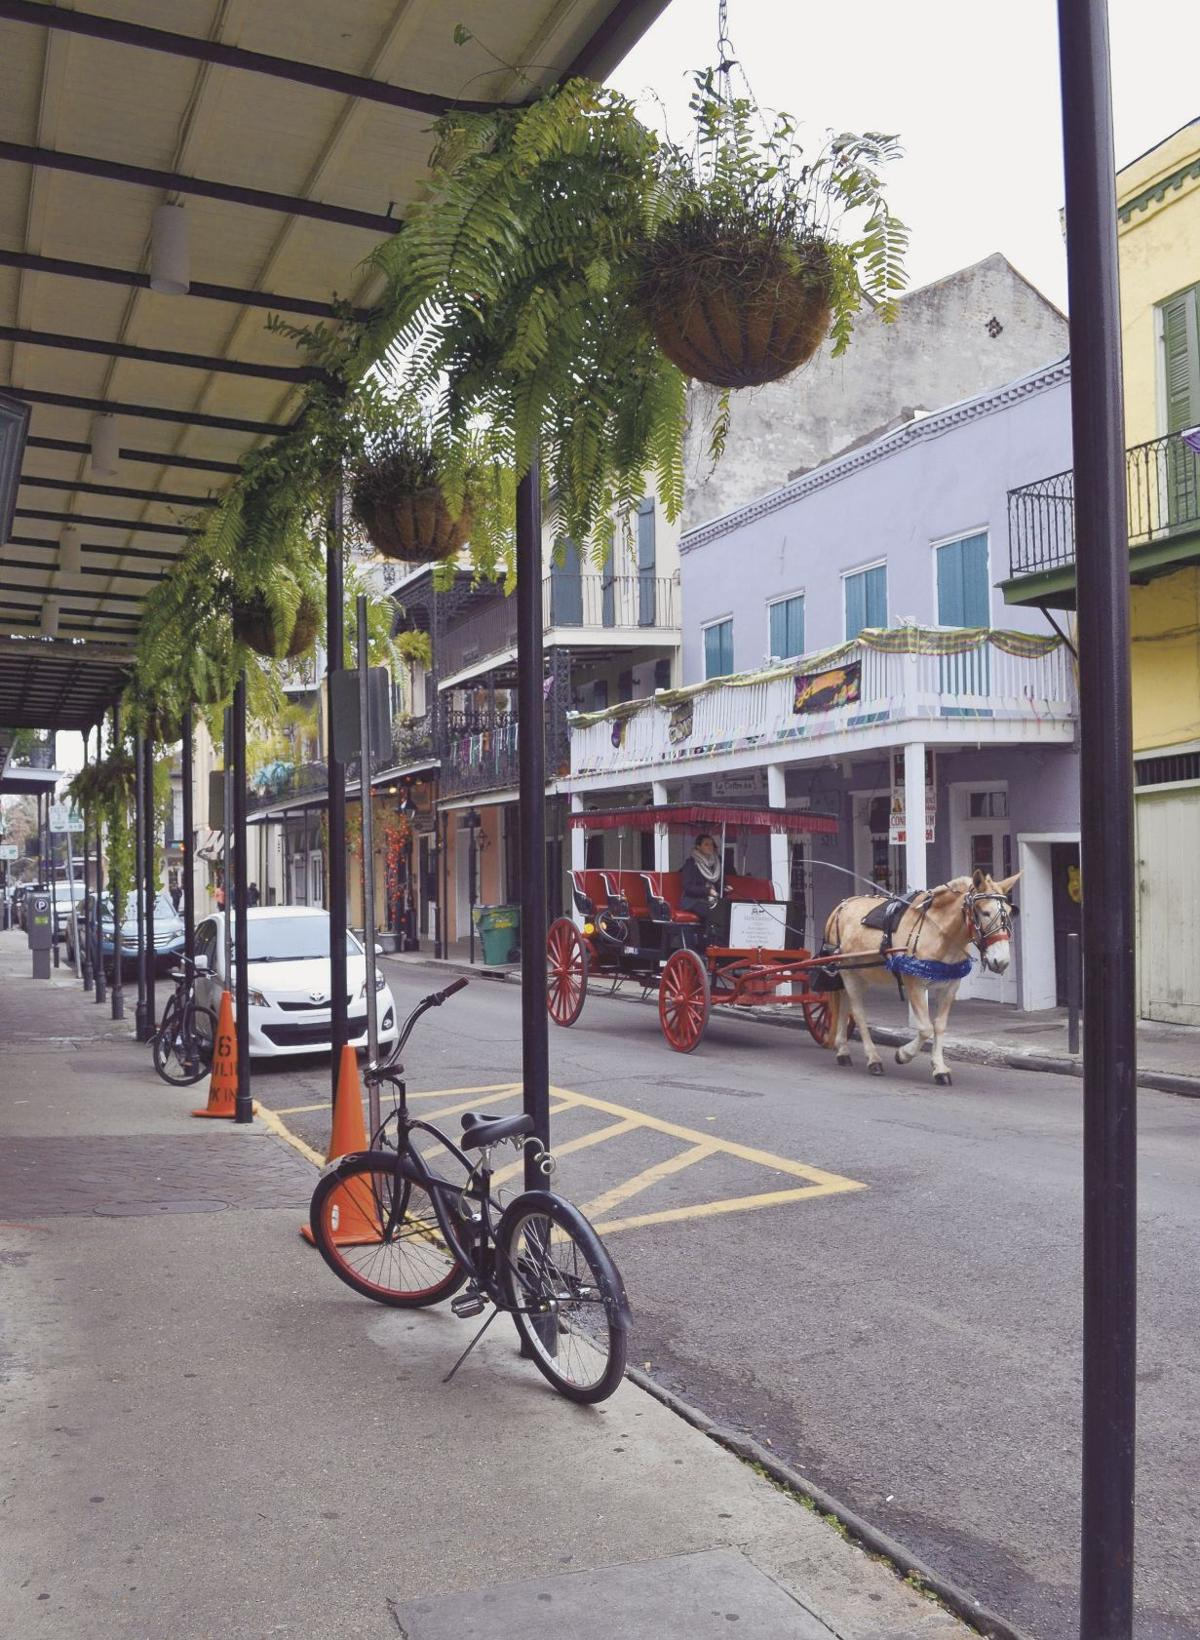 516 St. Philip St. in the French Quarter